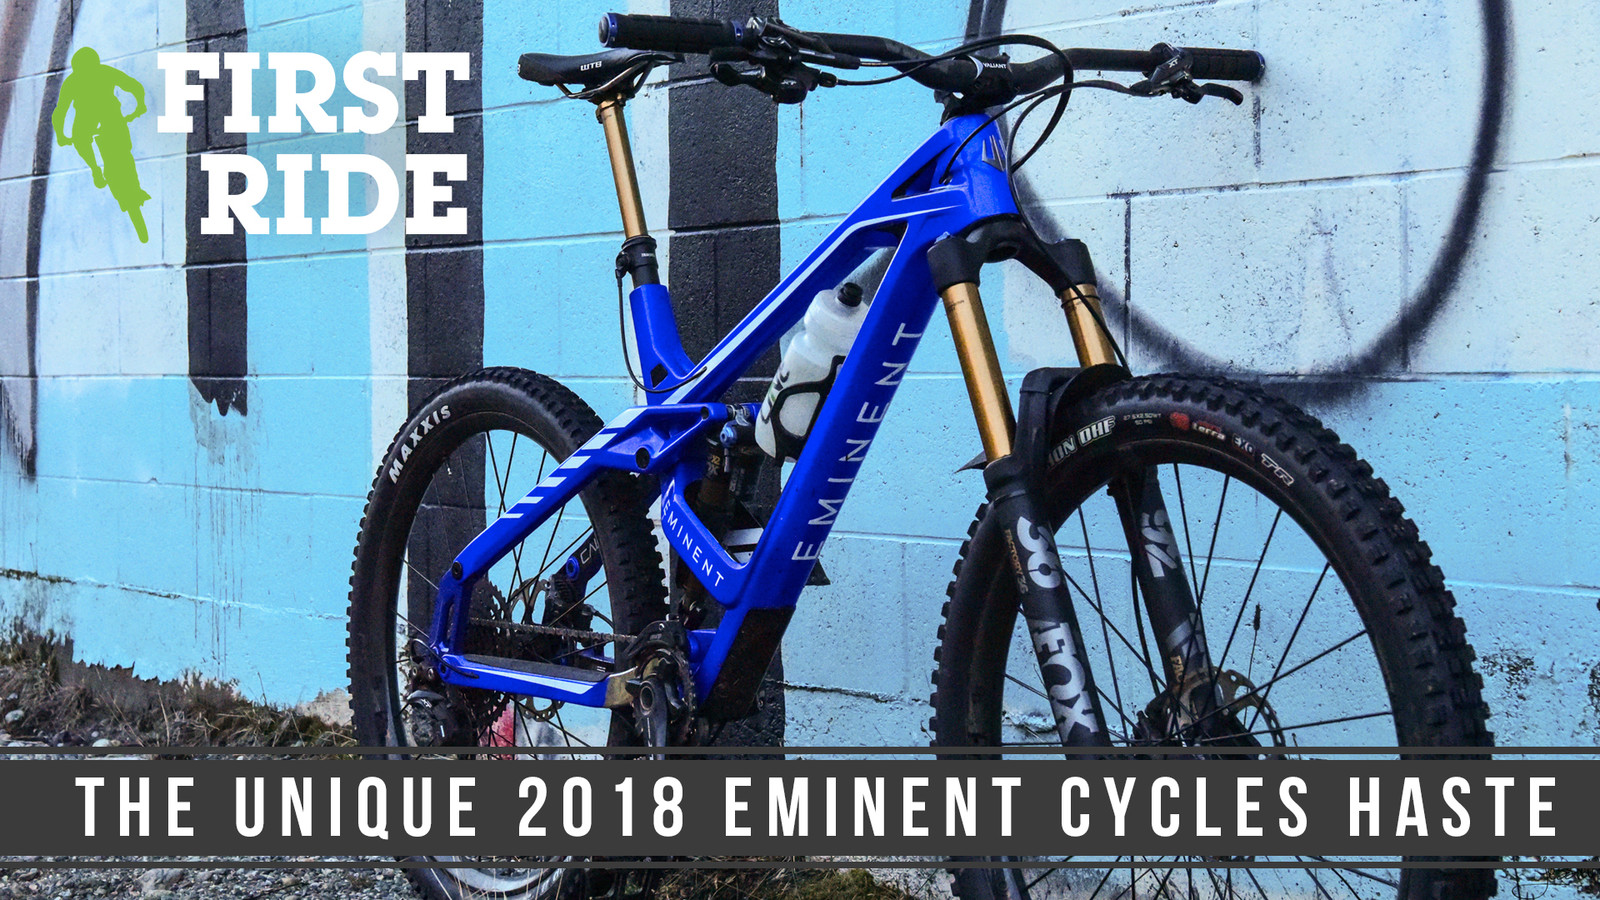 First Rides: The Unique 2018 Eminent Cycles Haste